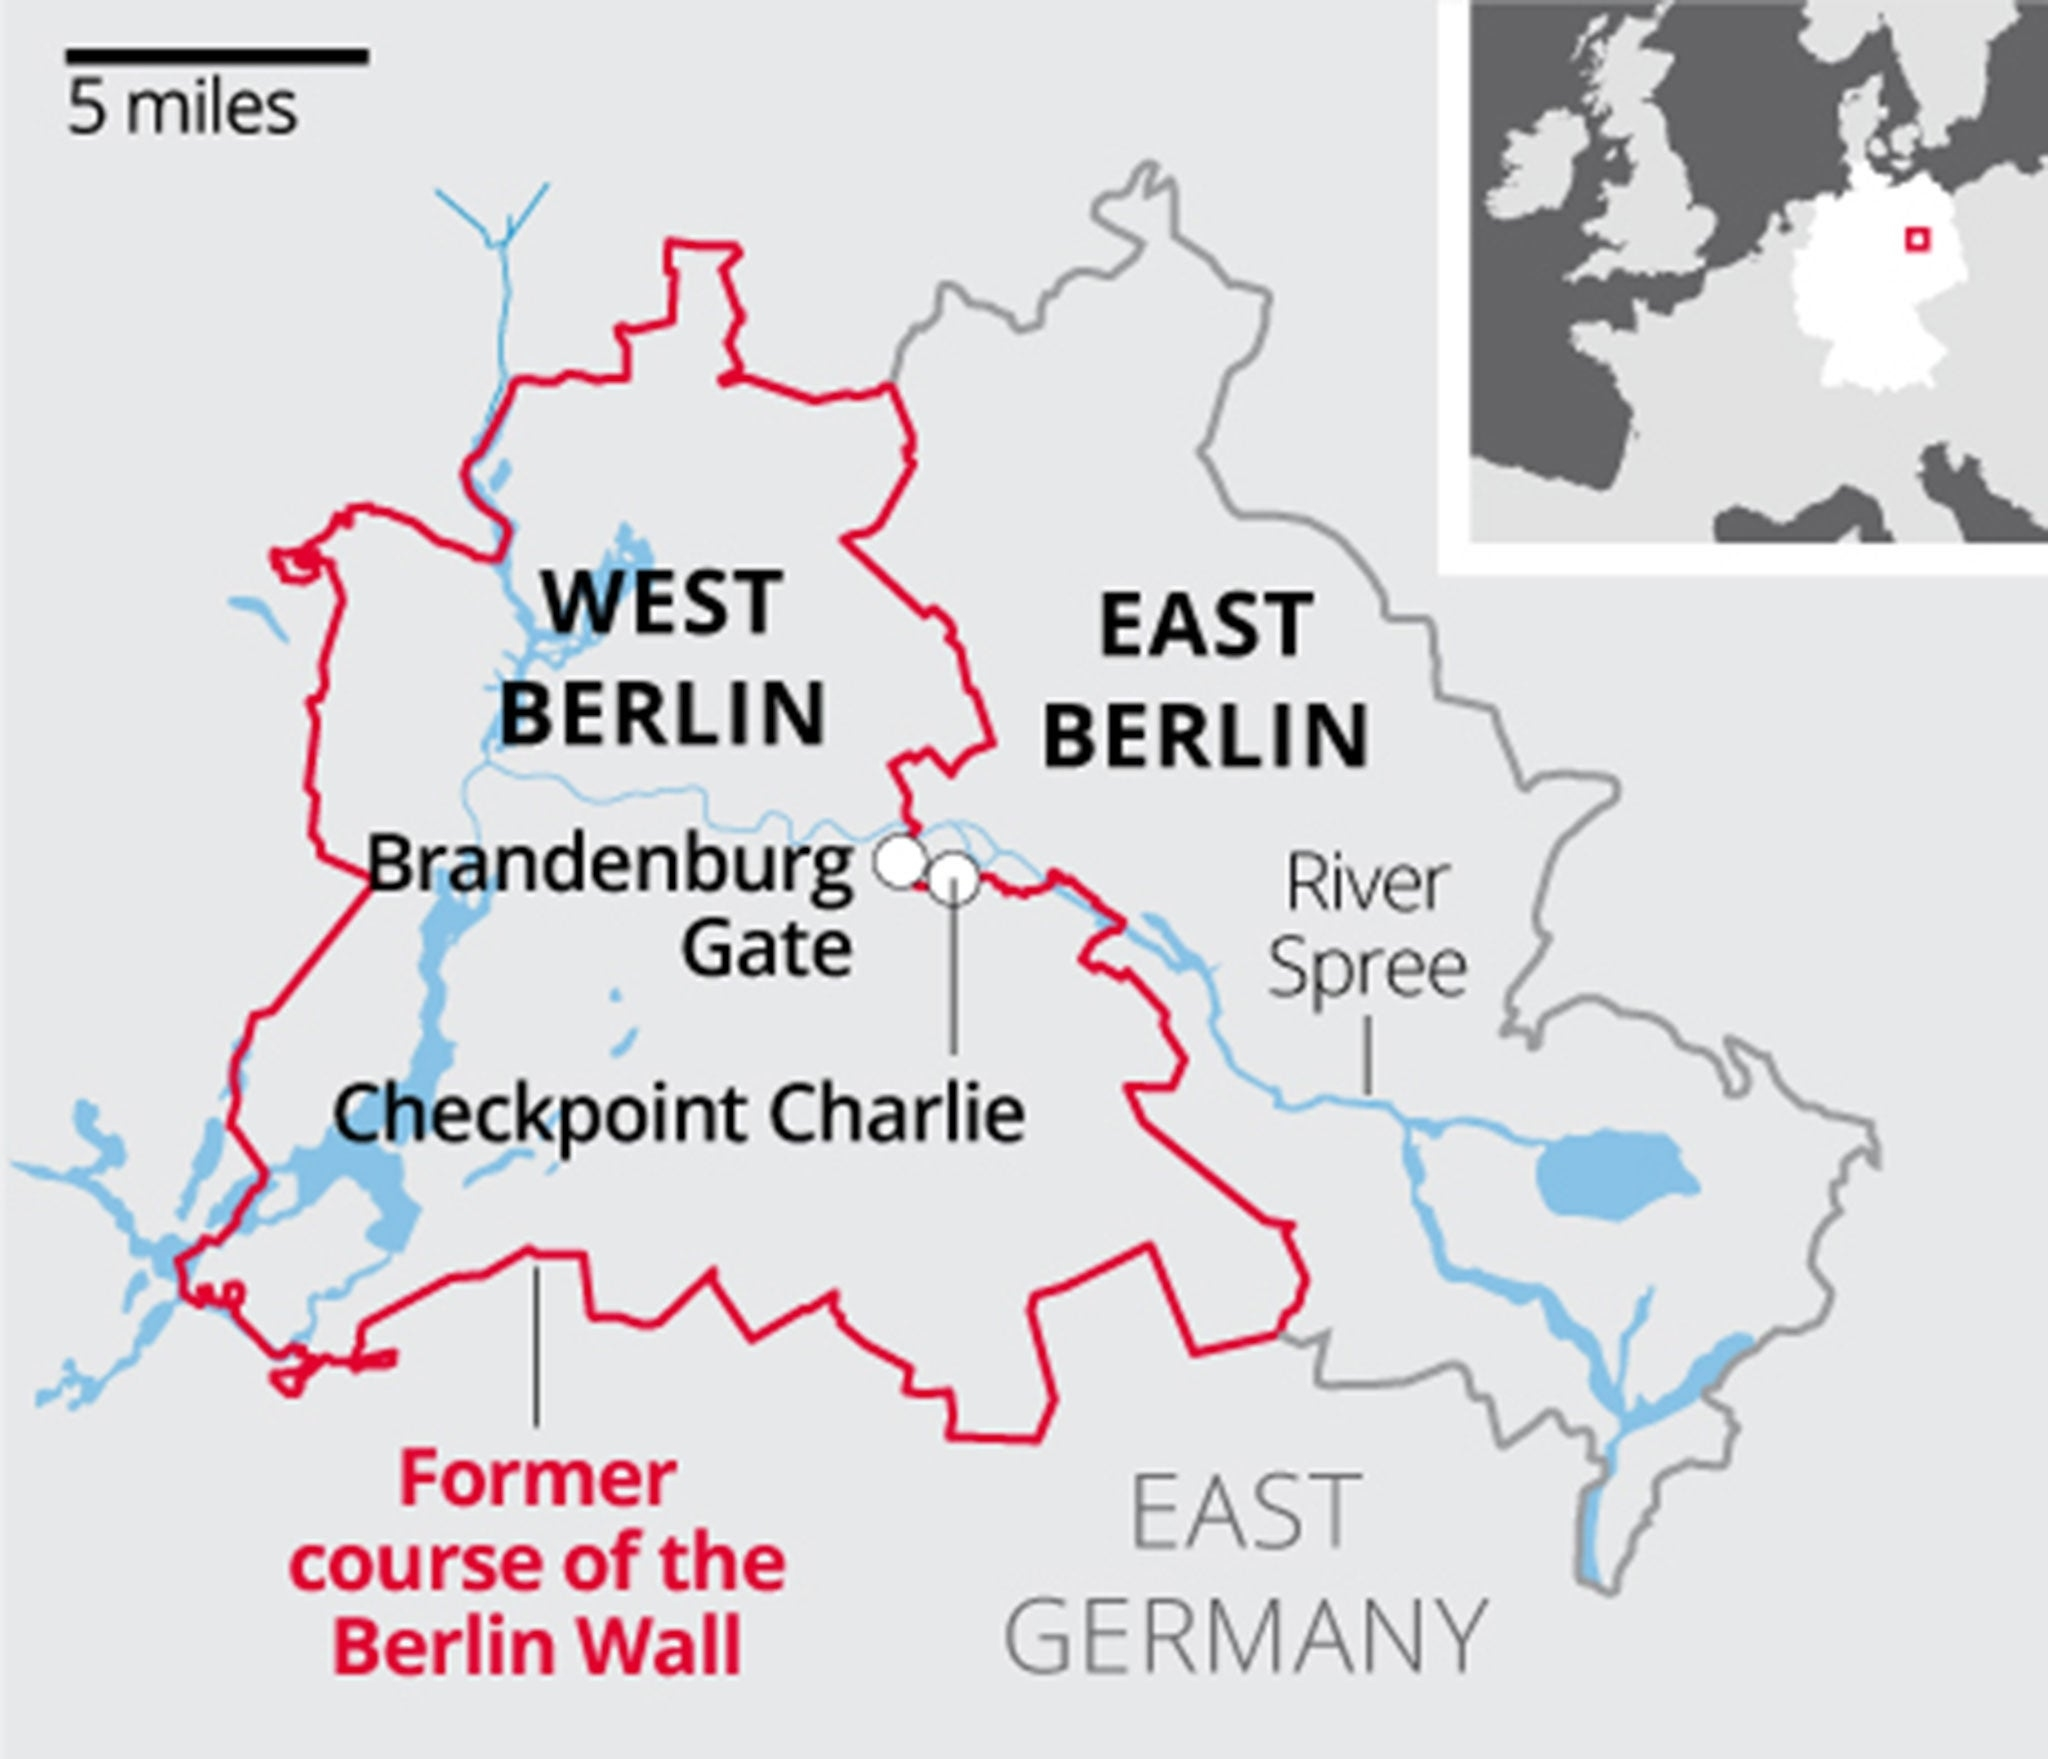 Berlin Wall: What You Need To Know About The Barrier That Divided regarding East Germany Map